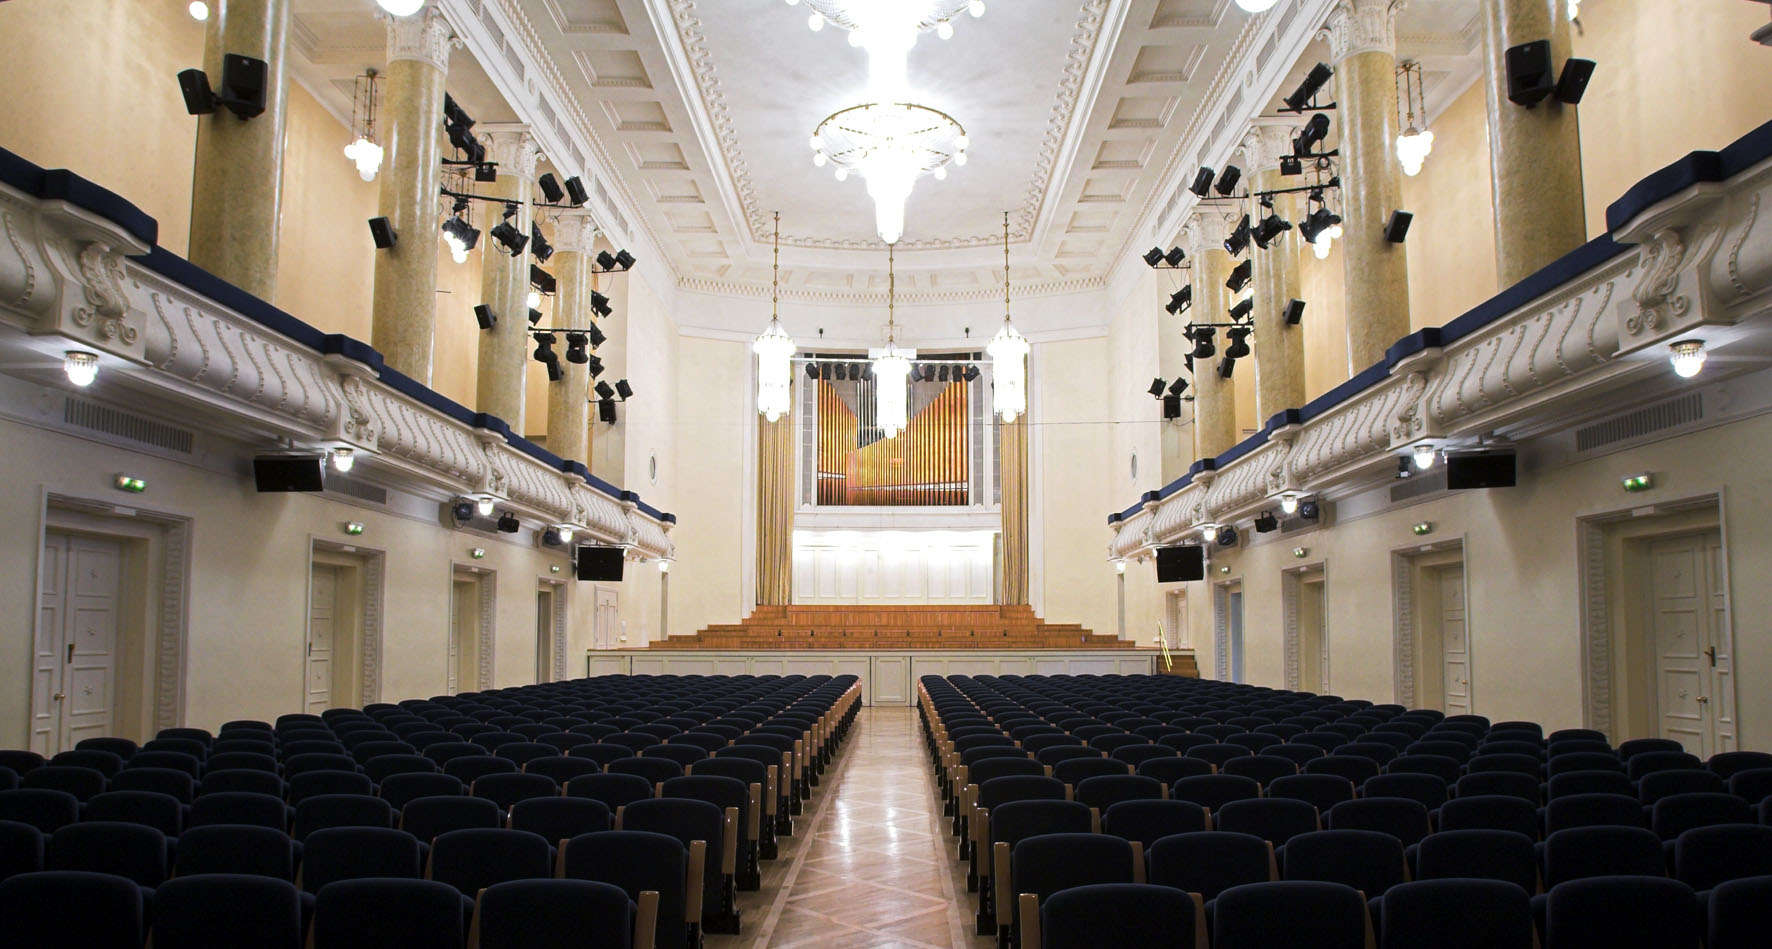 The Estonia Kontserdisaal - meeting place of the Estonian electoral college | photo via visittallinn.ee